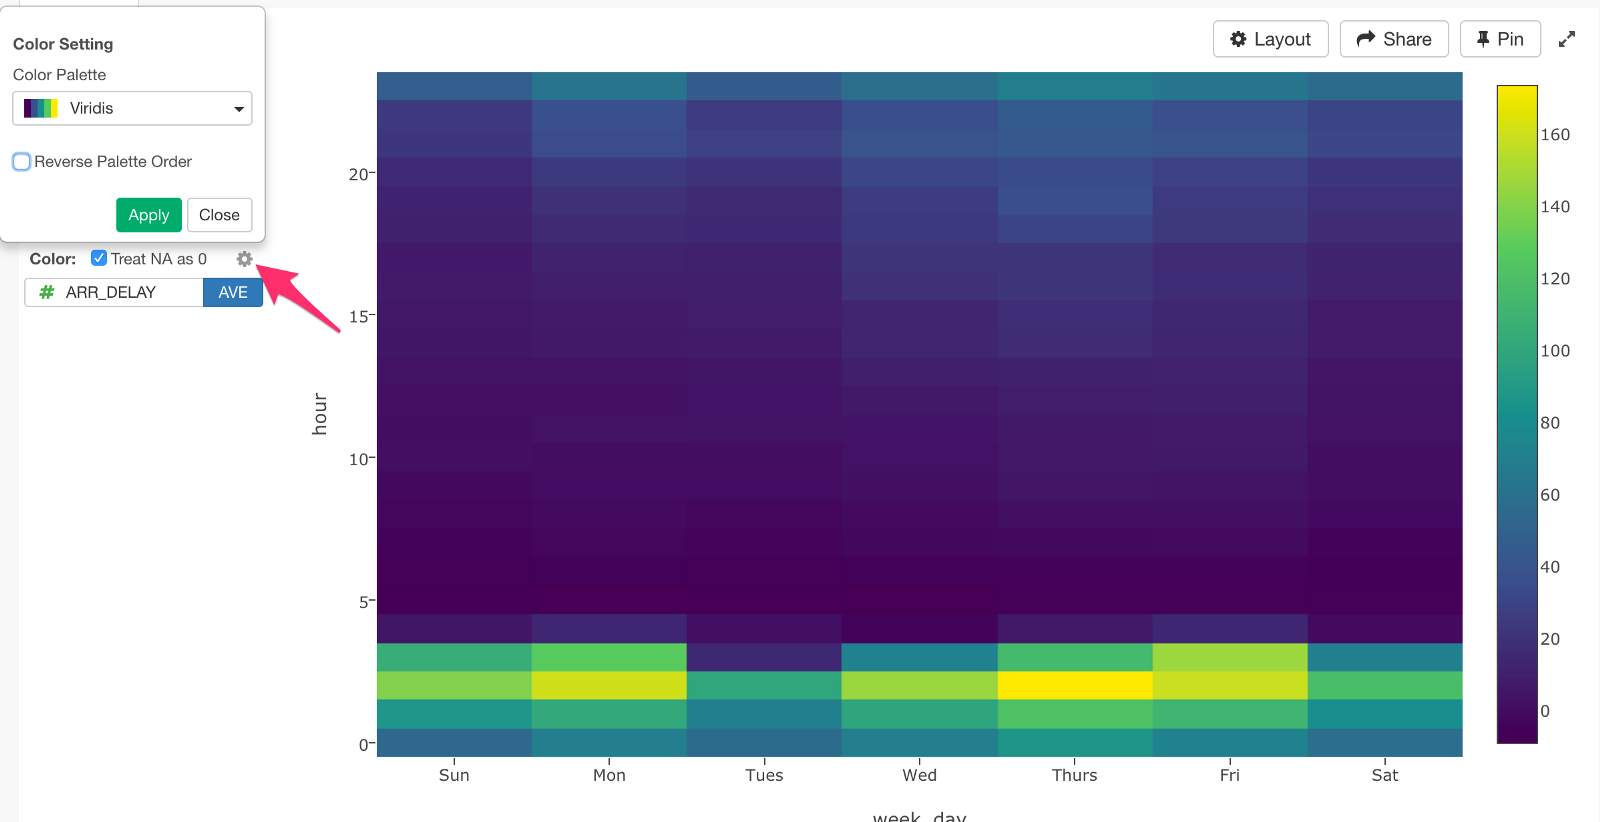 Modern Quick Introduction To Heatmap In Exploratory – Learn Data Science with regard to Color Palette In R